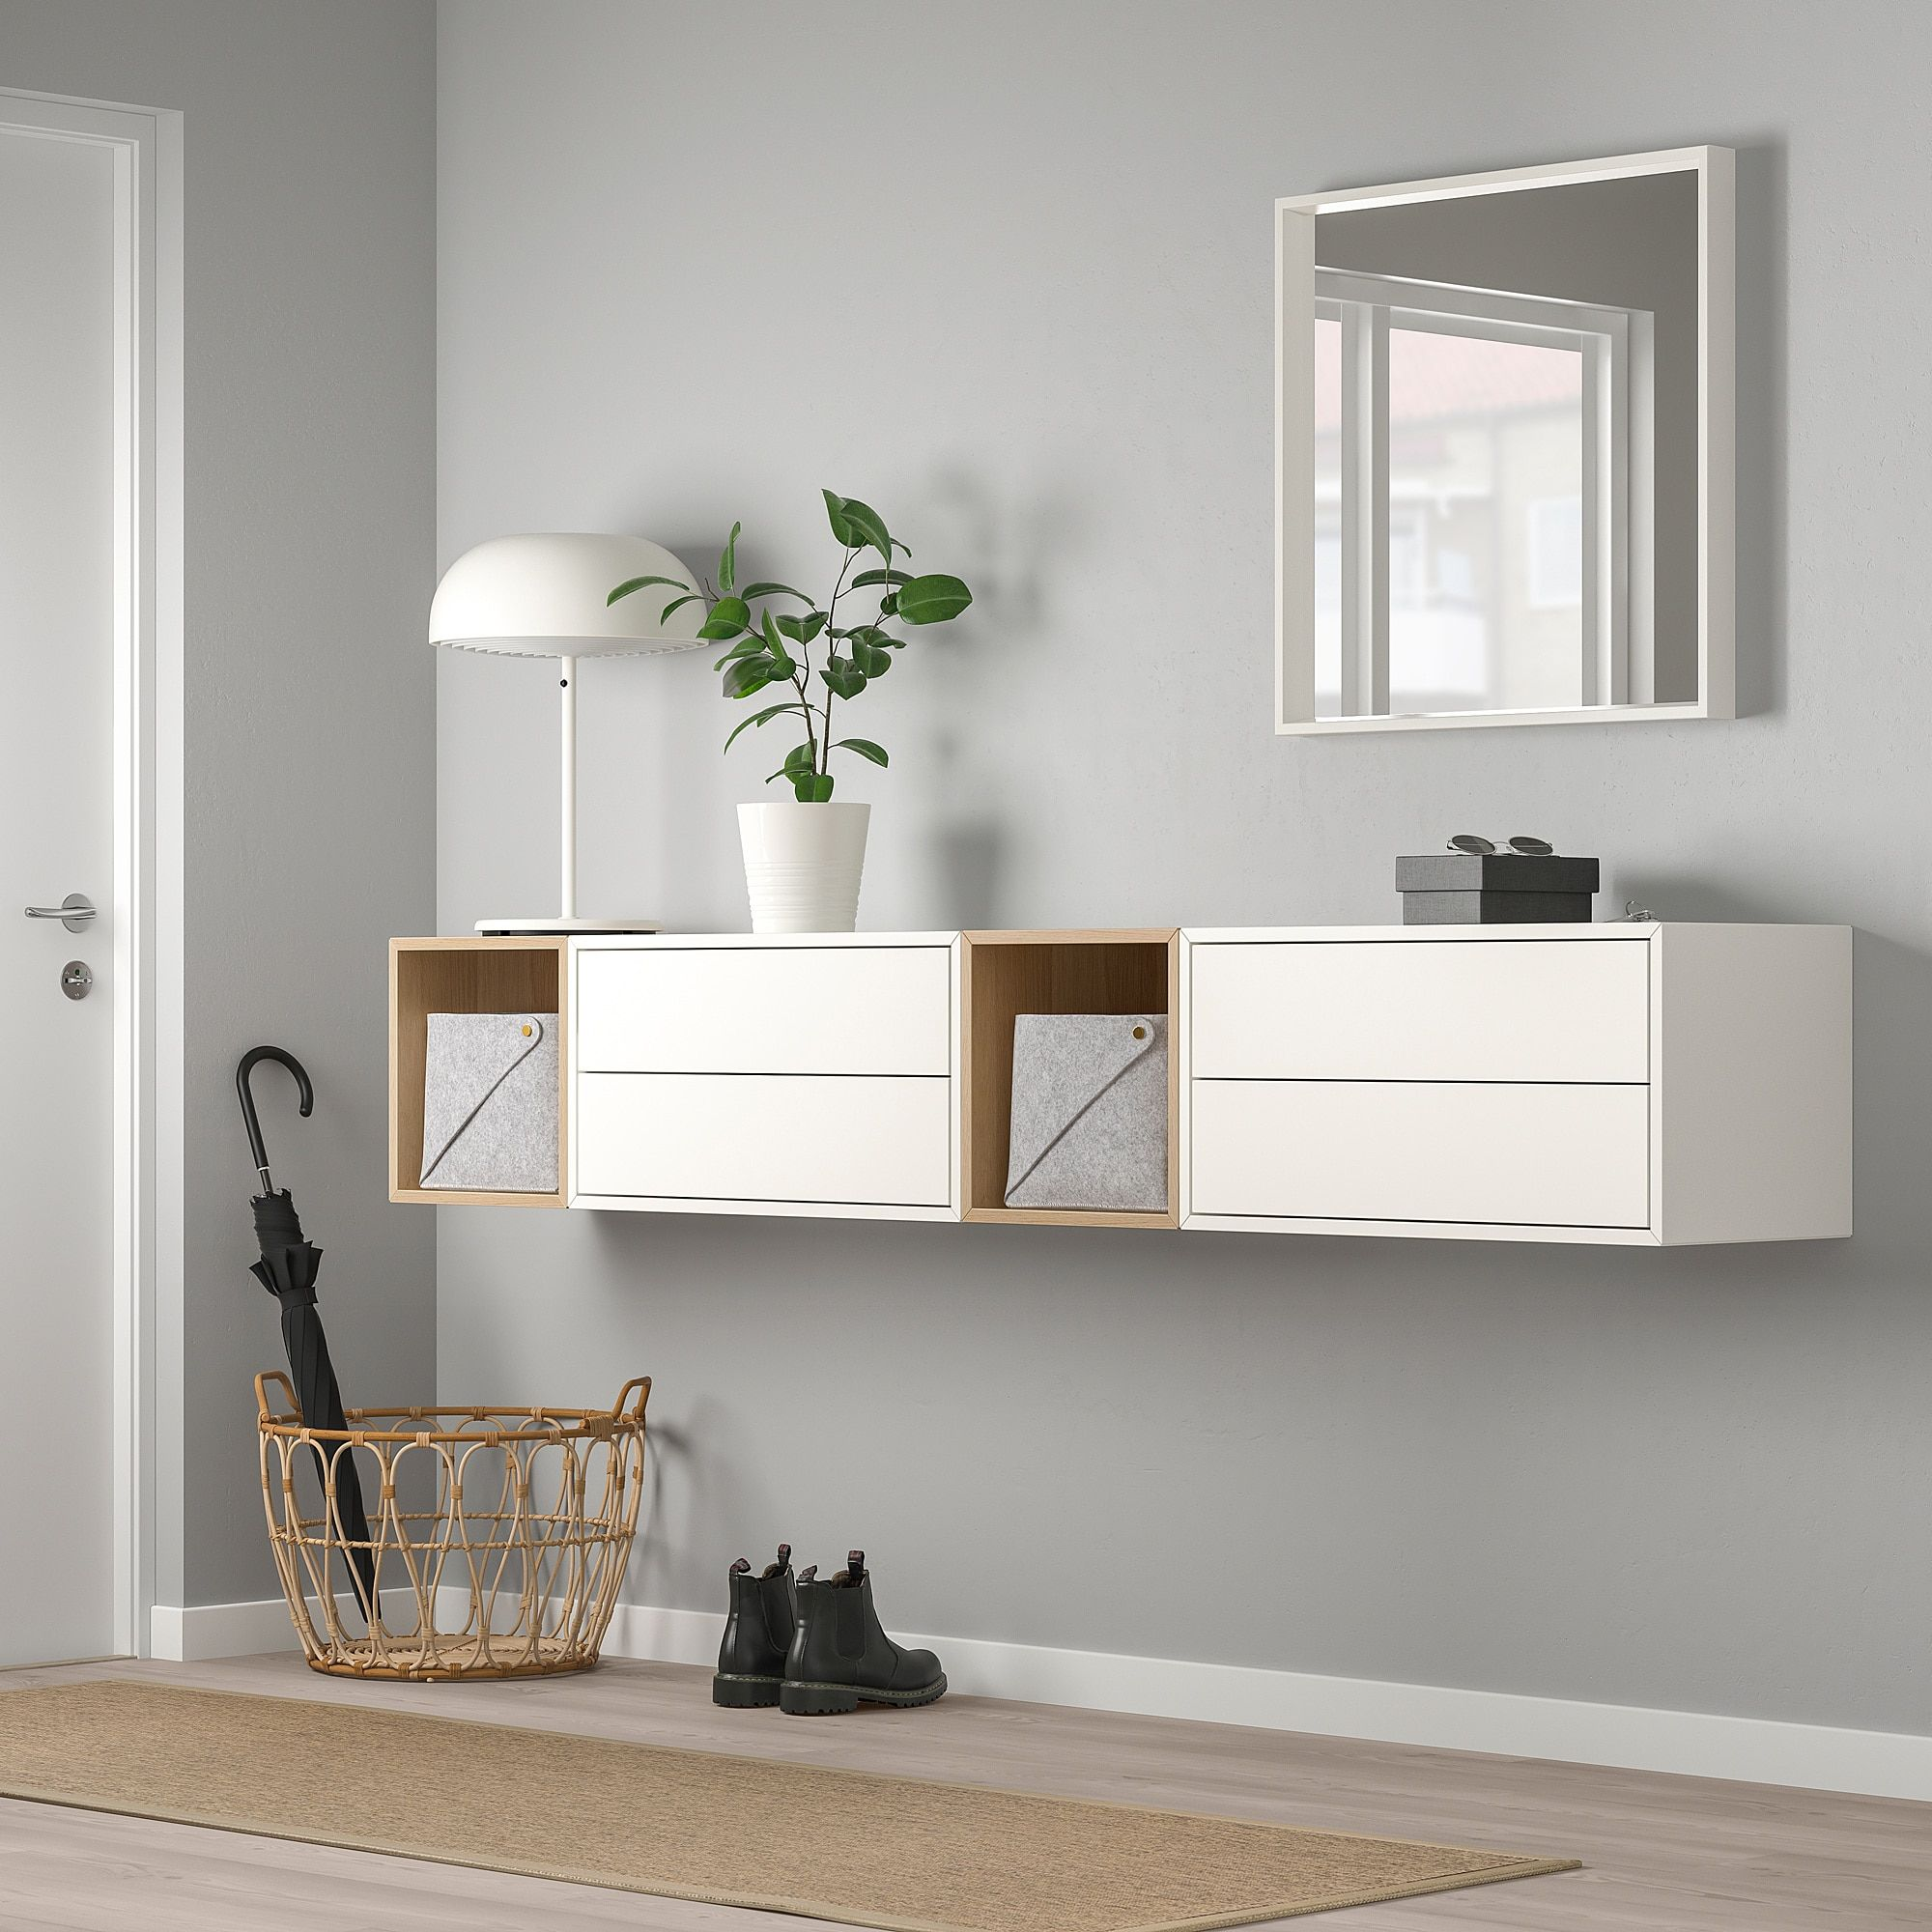 Eket Wall Mounted Cabinet Combination White White Stained Oak Effect Buy Online Or In Store Ikea Eket Ikea Living Room Wall Mounted Cabinet